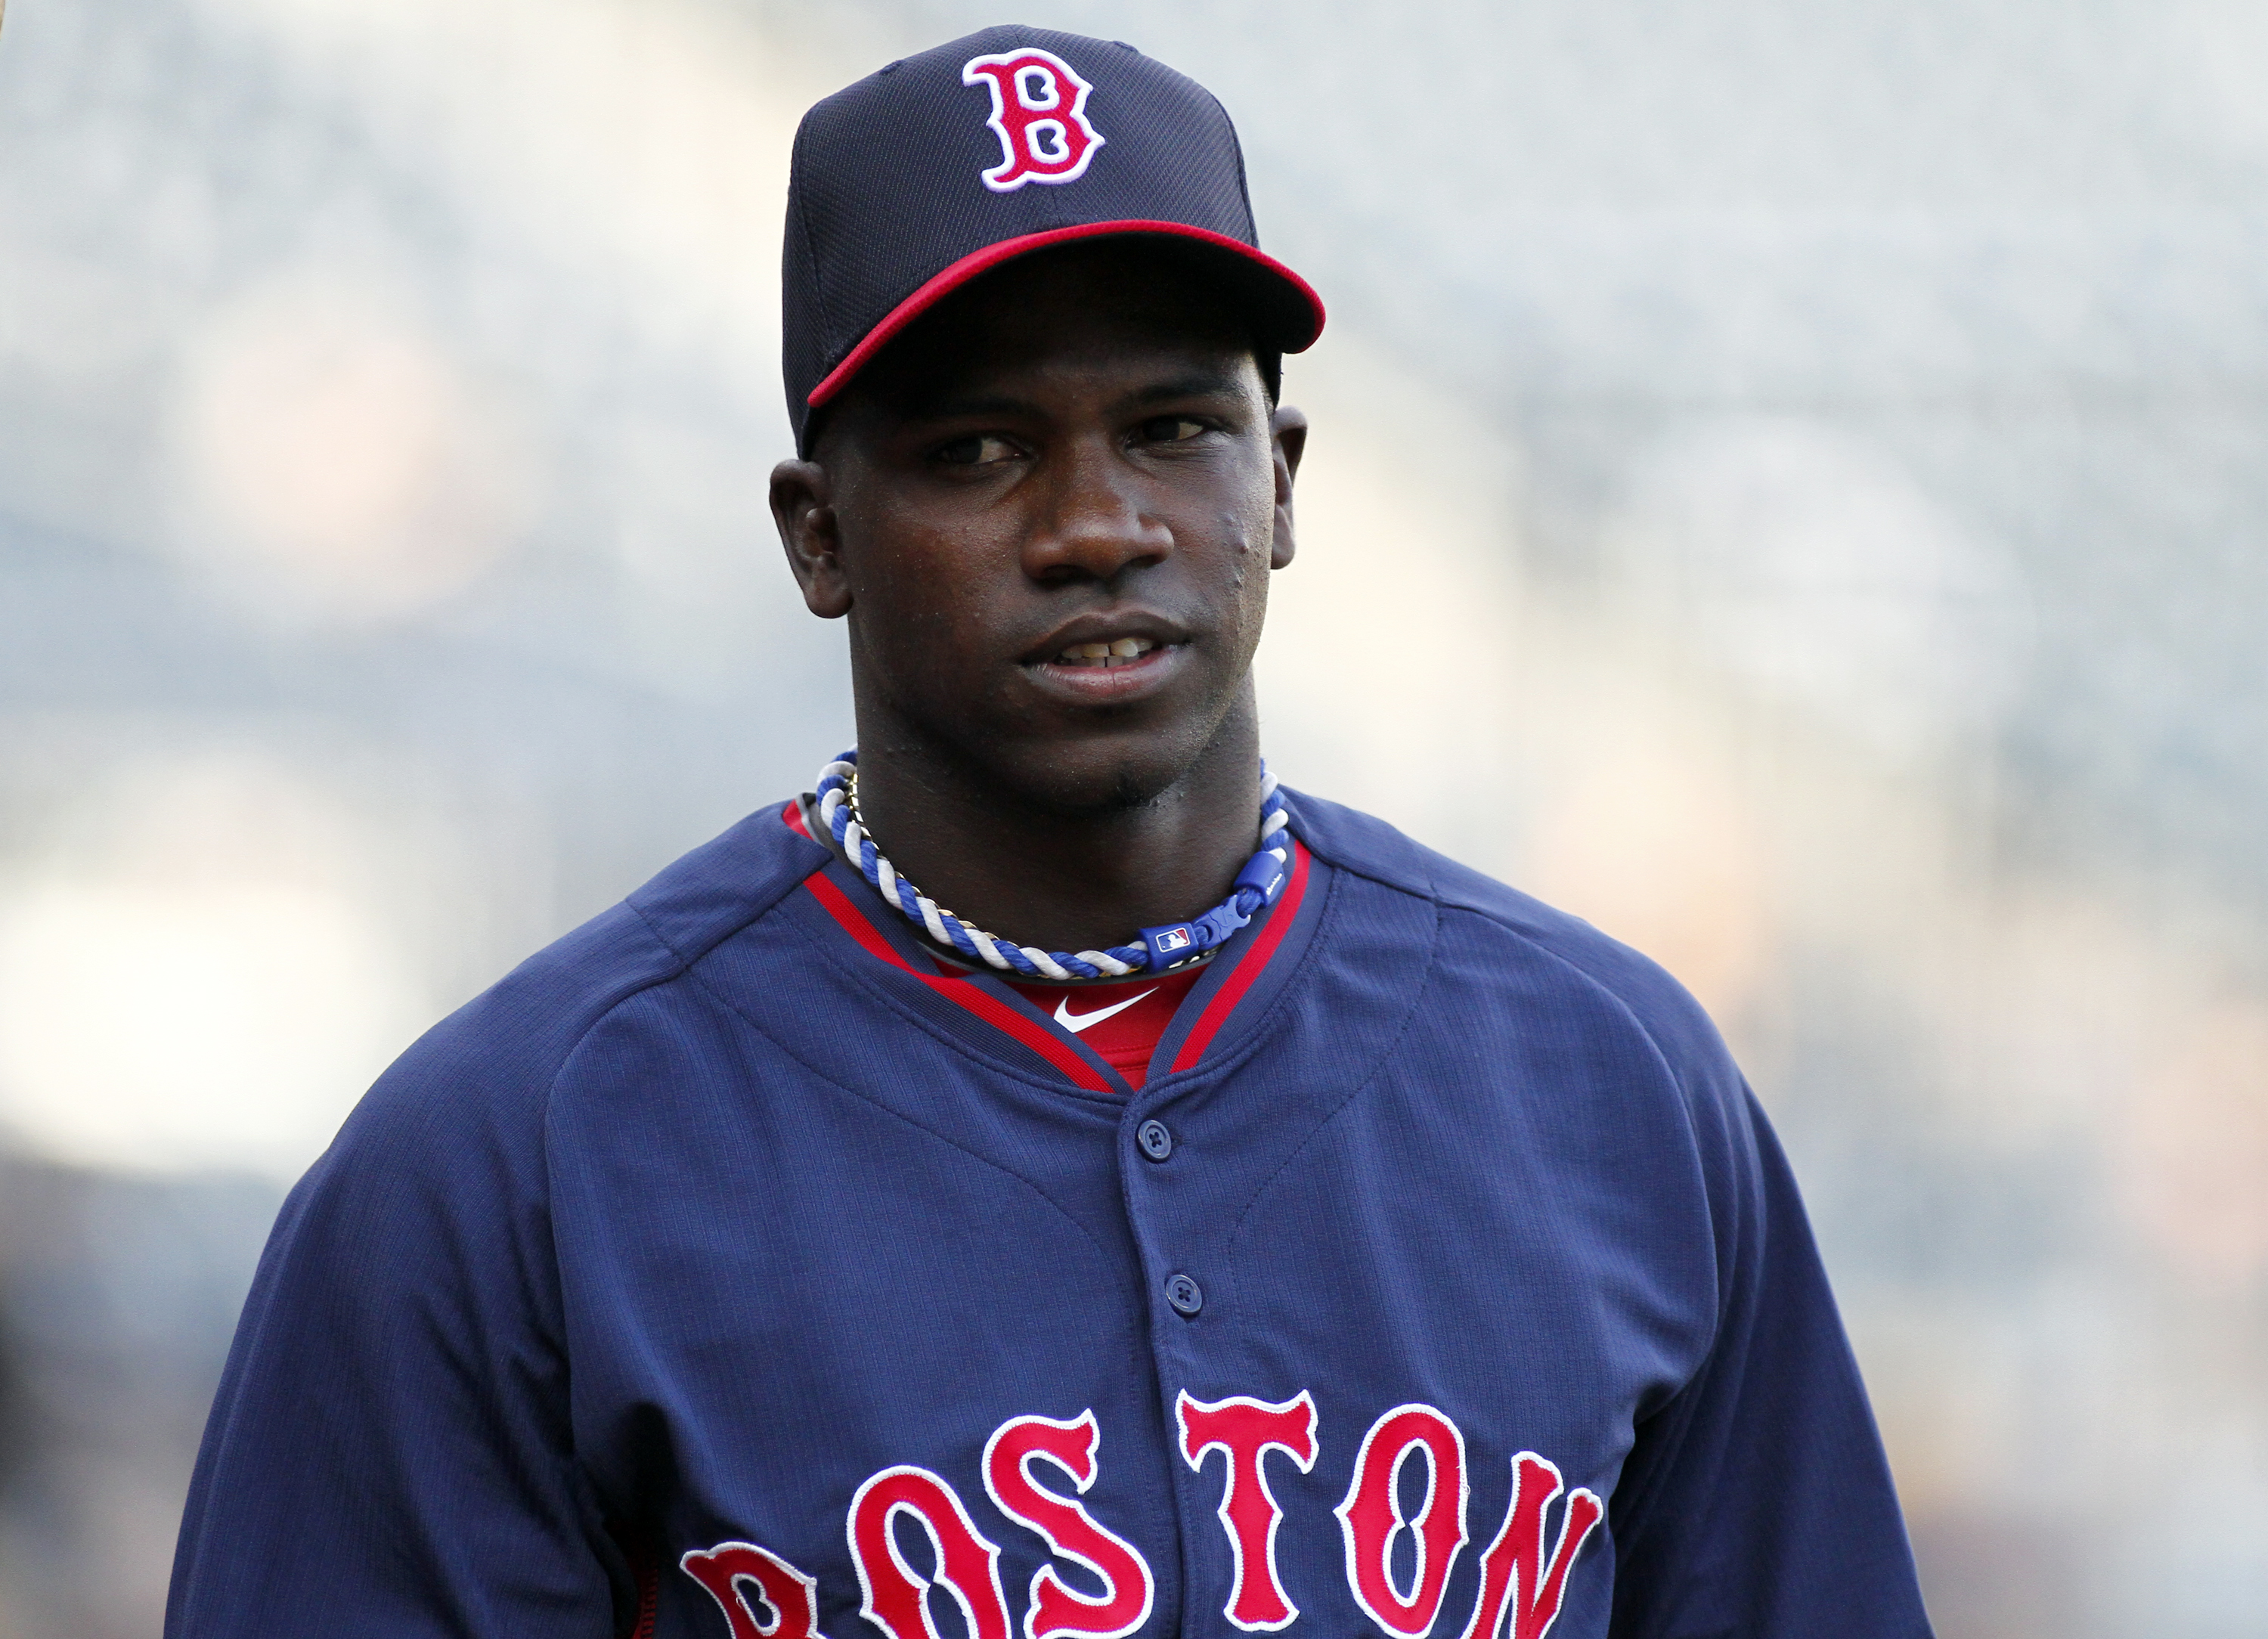 Rusney Castillo May Be Done for Winter